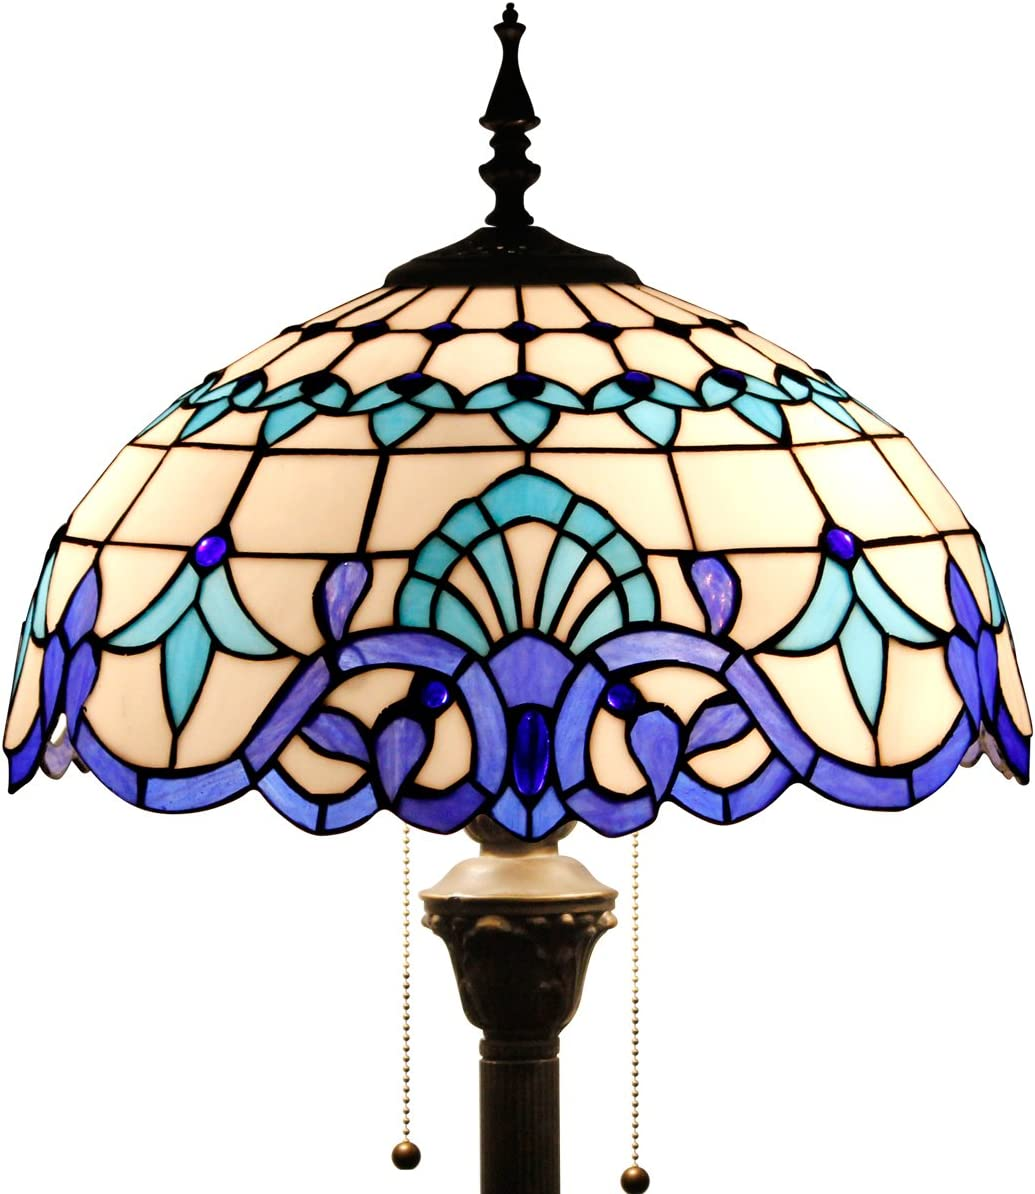 Tiffany Style Floor Standing Lamp 64 Inch Tall White Blue Stained Glass Baroque Shade 2 Light Antique Base for Bedroom Living Room Reading Lighting Table S003B WERFACTORY